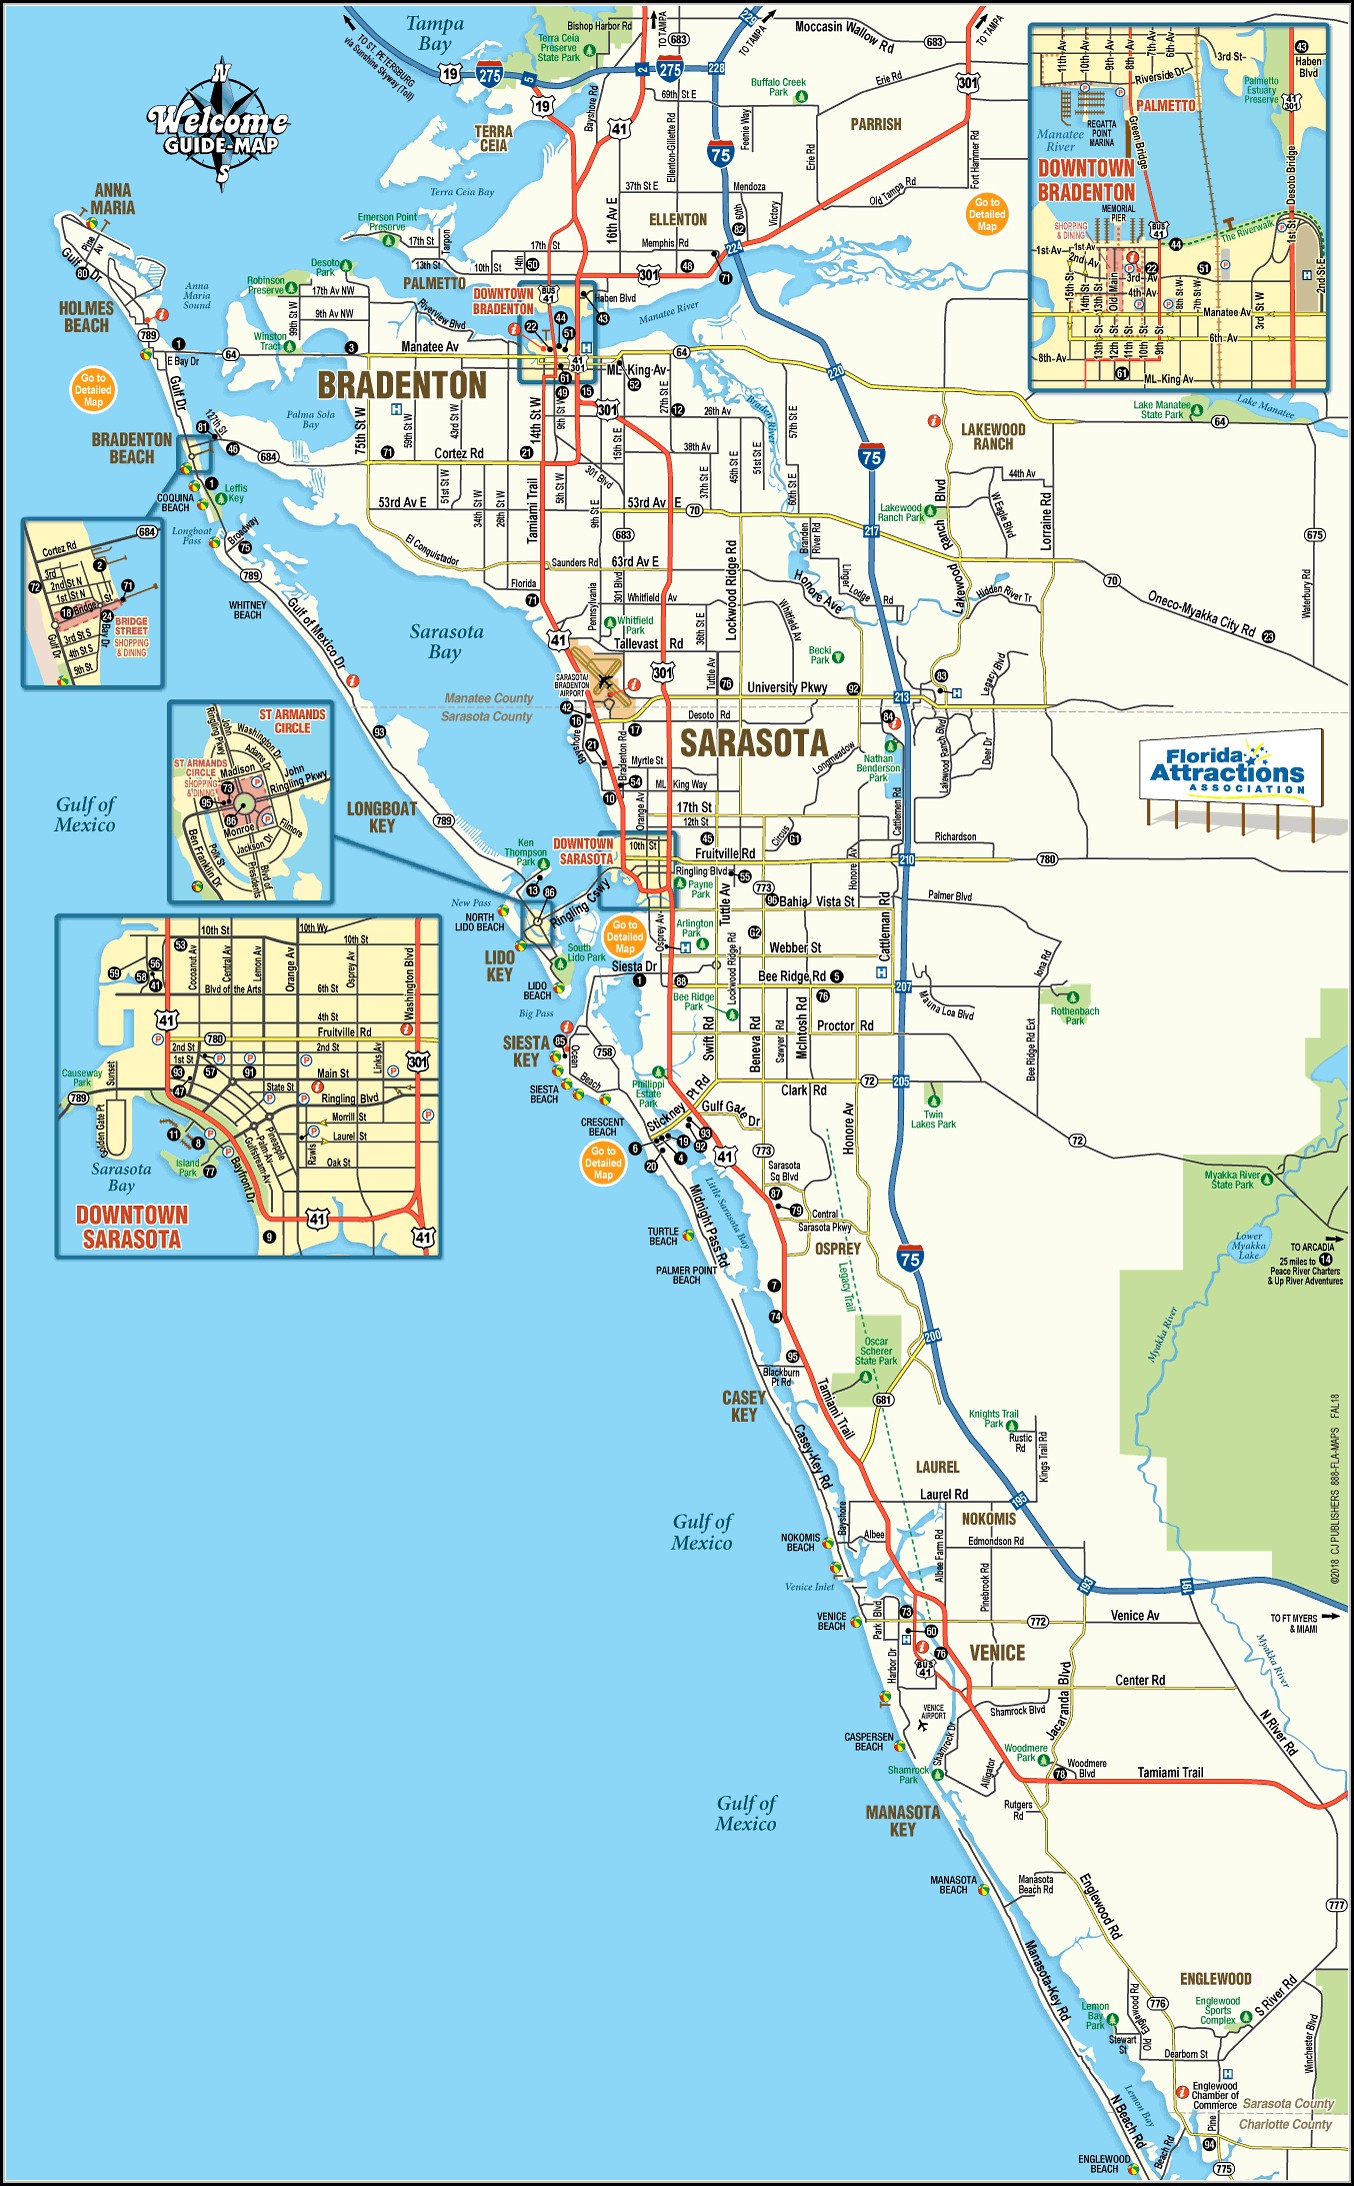 Map Of Sarasota Florida - Map : Resume Examples #ygkzkd53P9 - Sarasota Florida Map